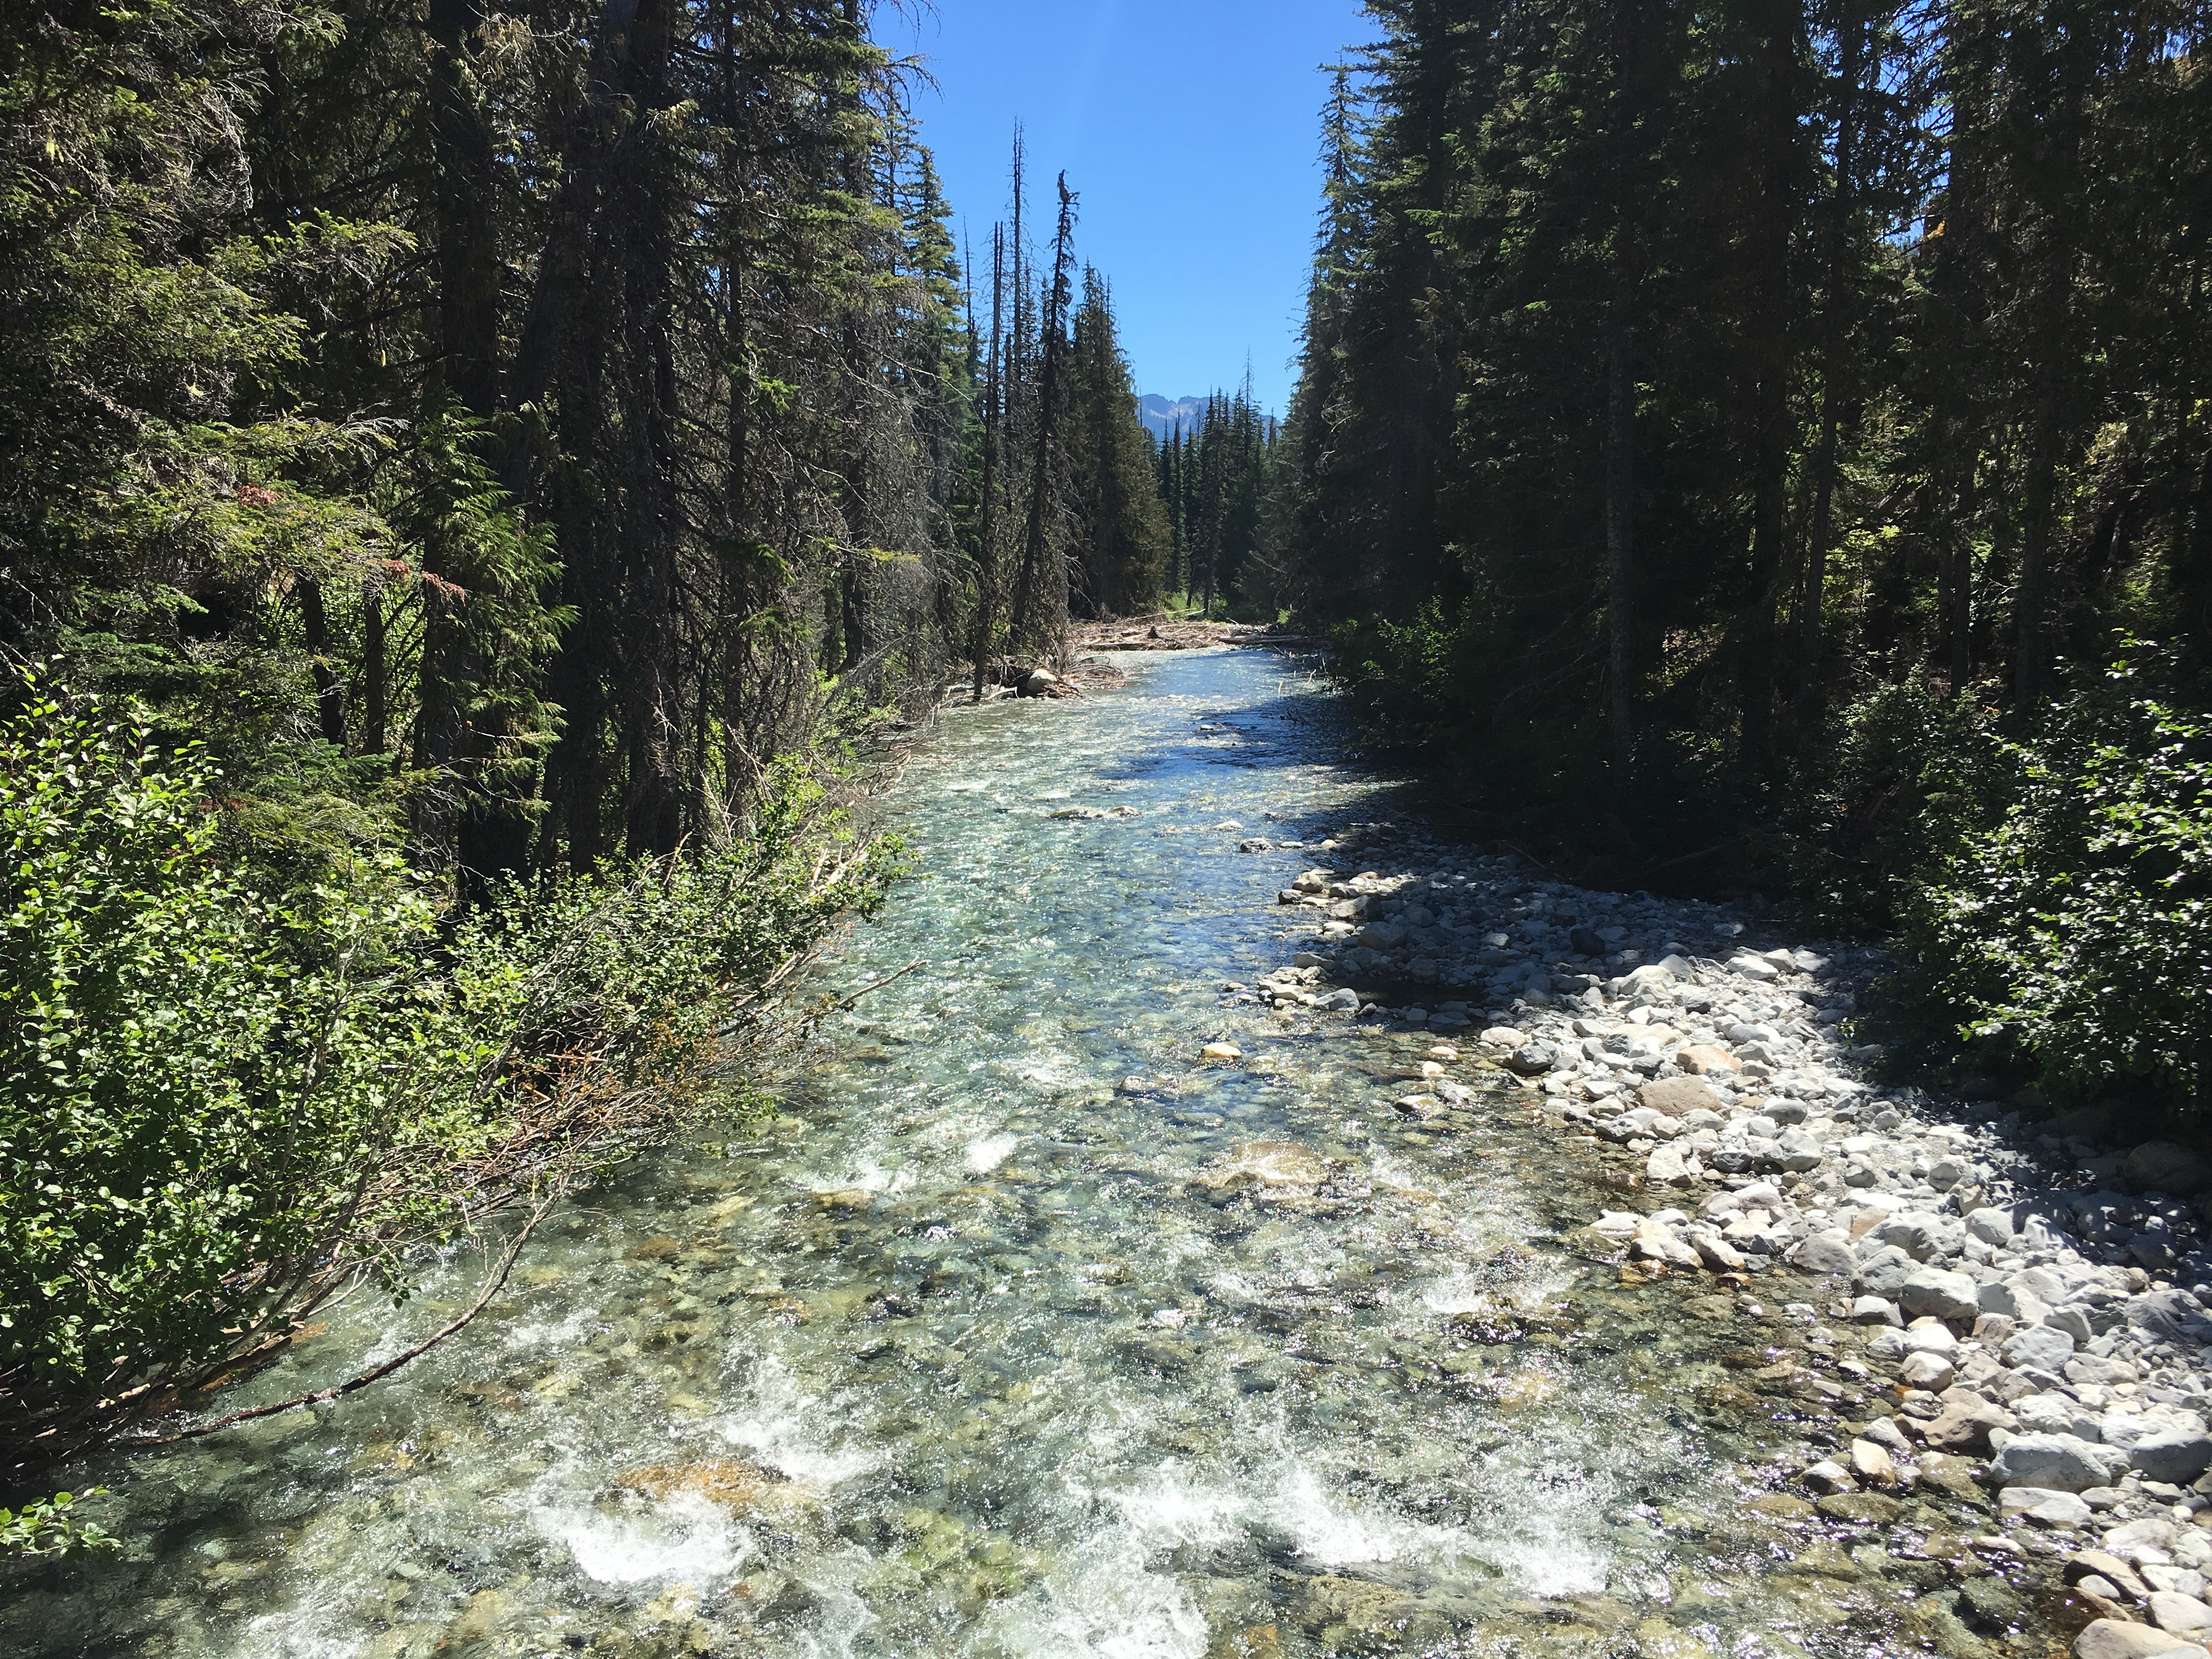 One of many stream crossings on Stevens Pass to Snoqualmie Pass adventure